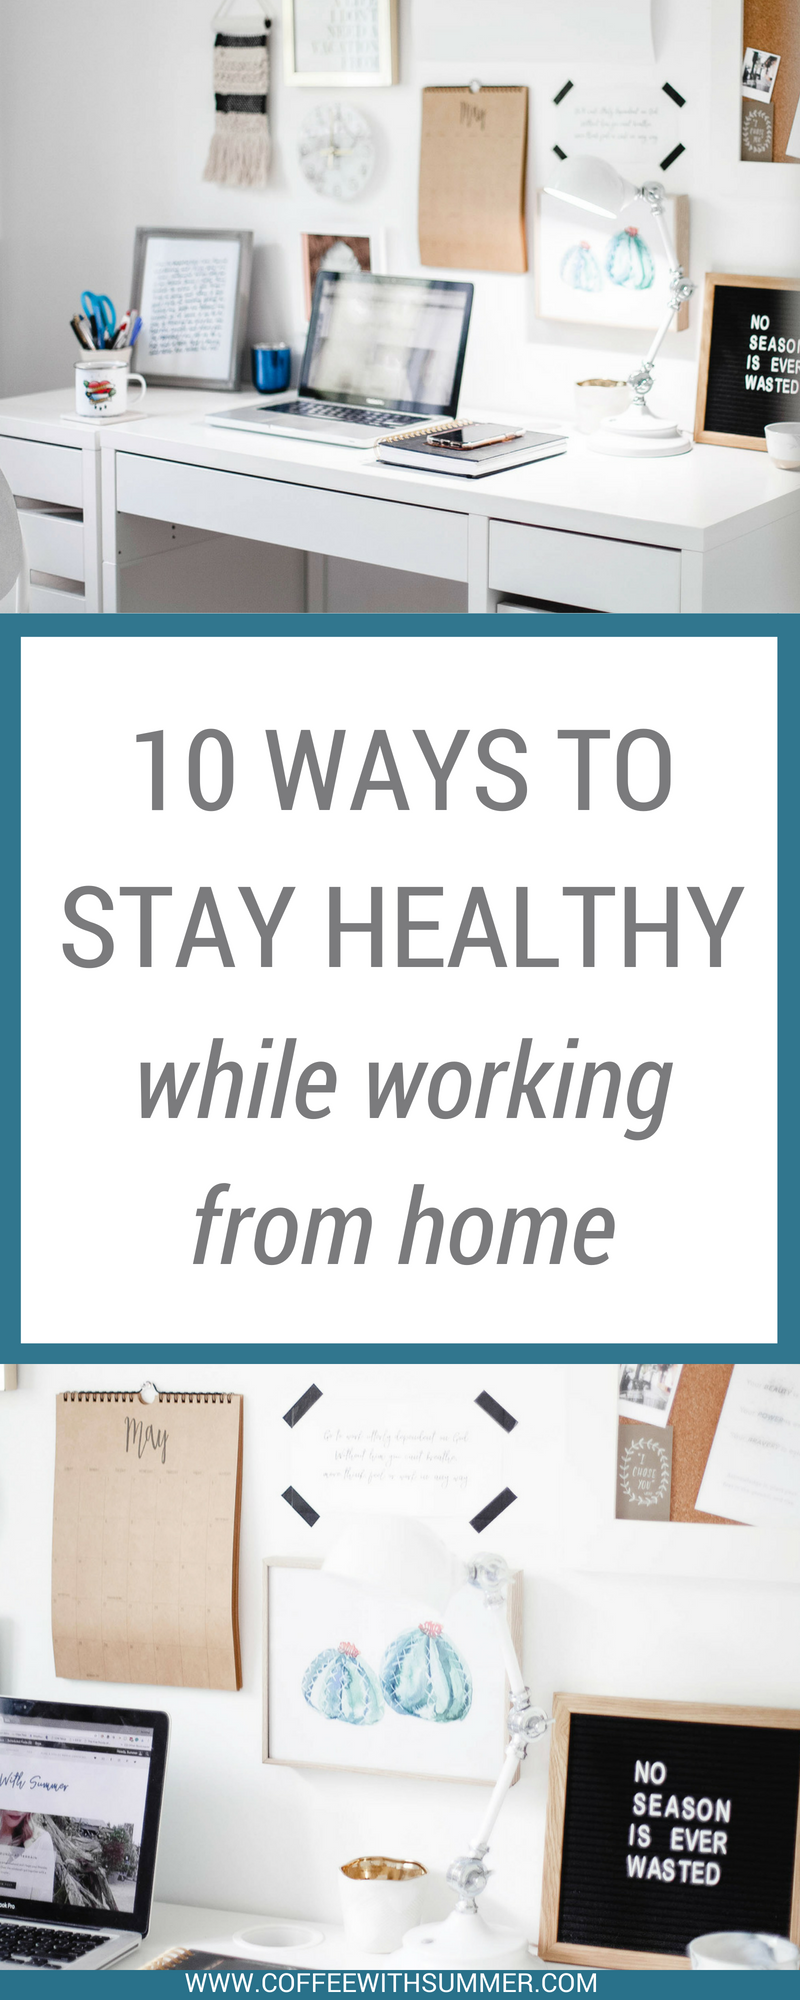 10 working for tips from home advise to wear for everyday in 2019